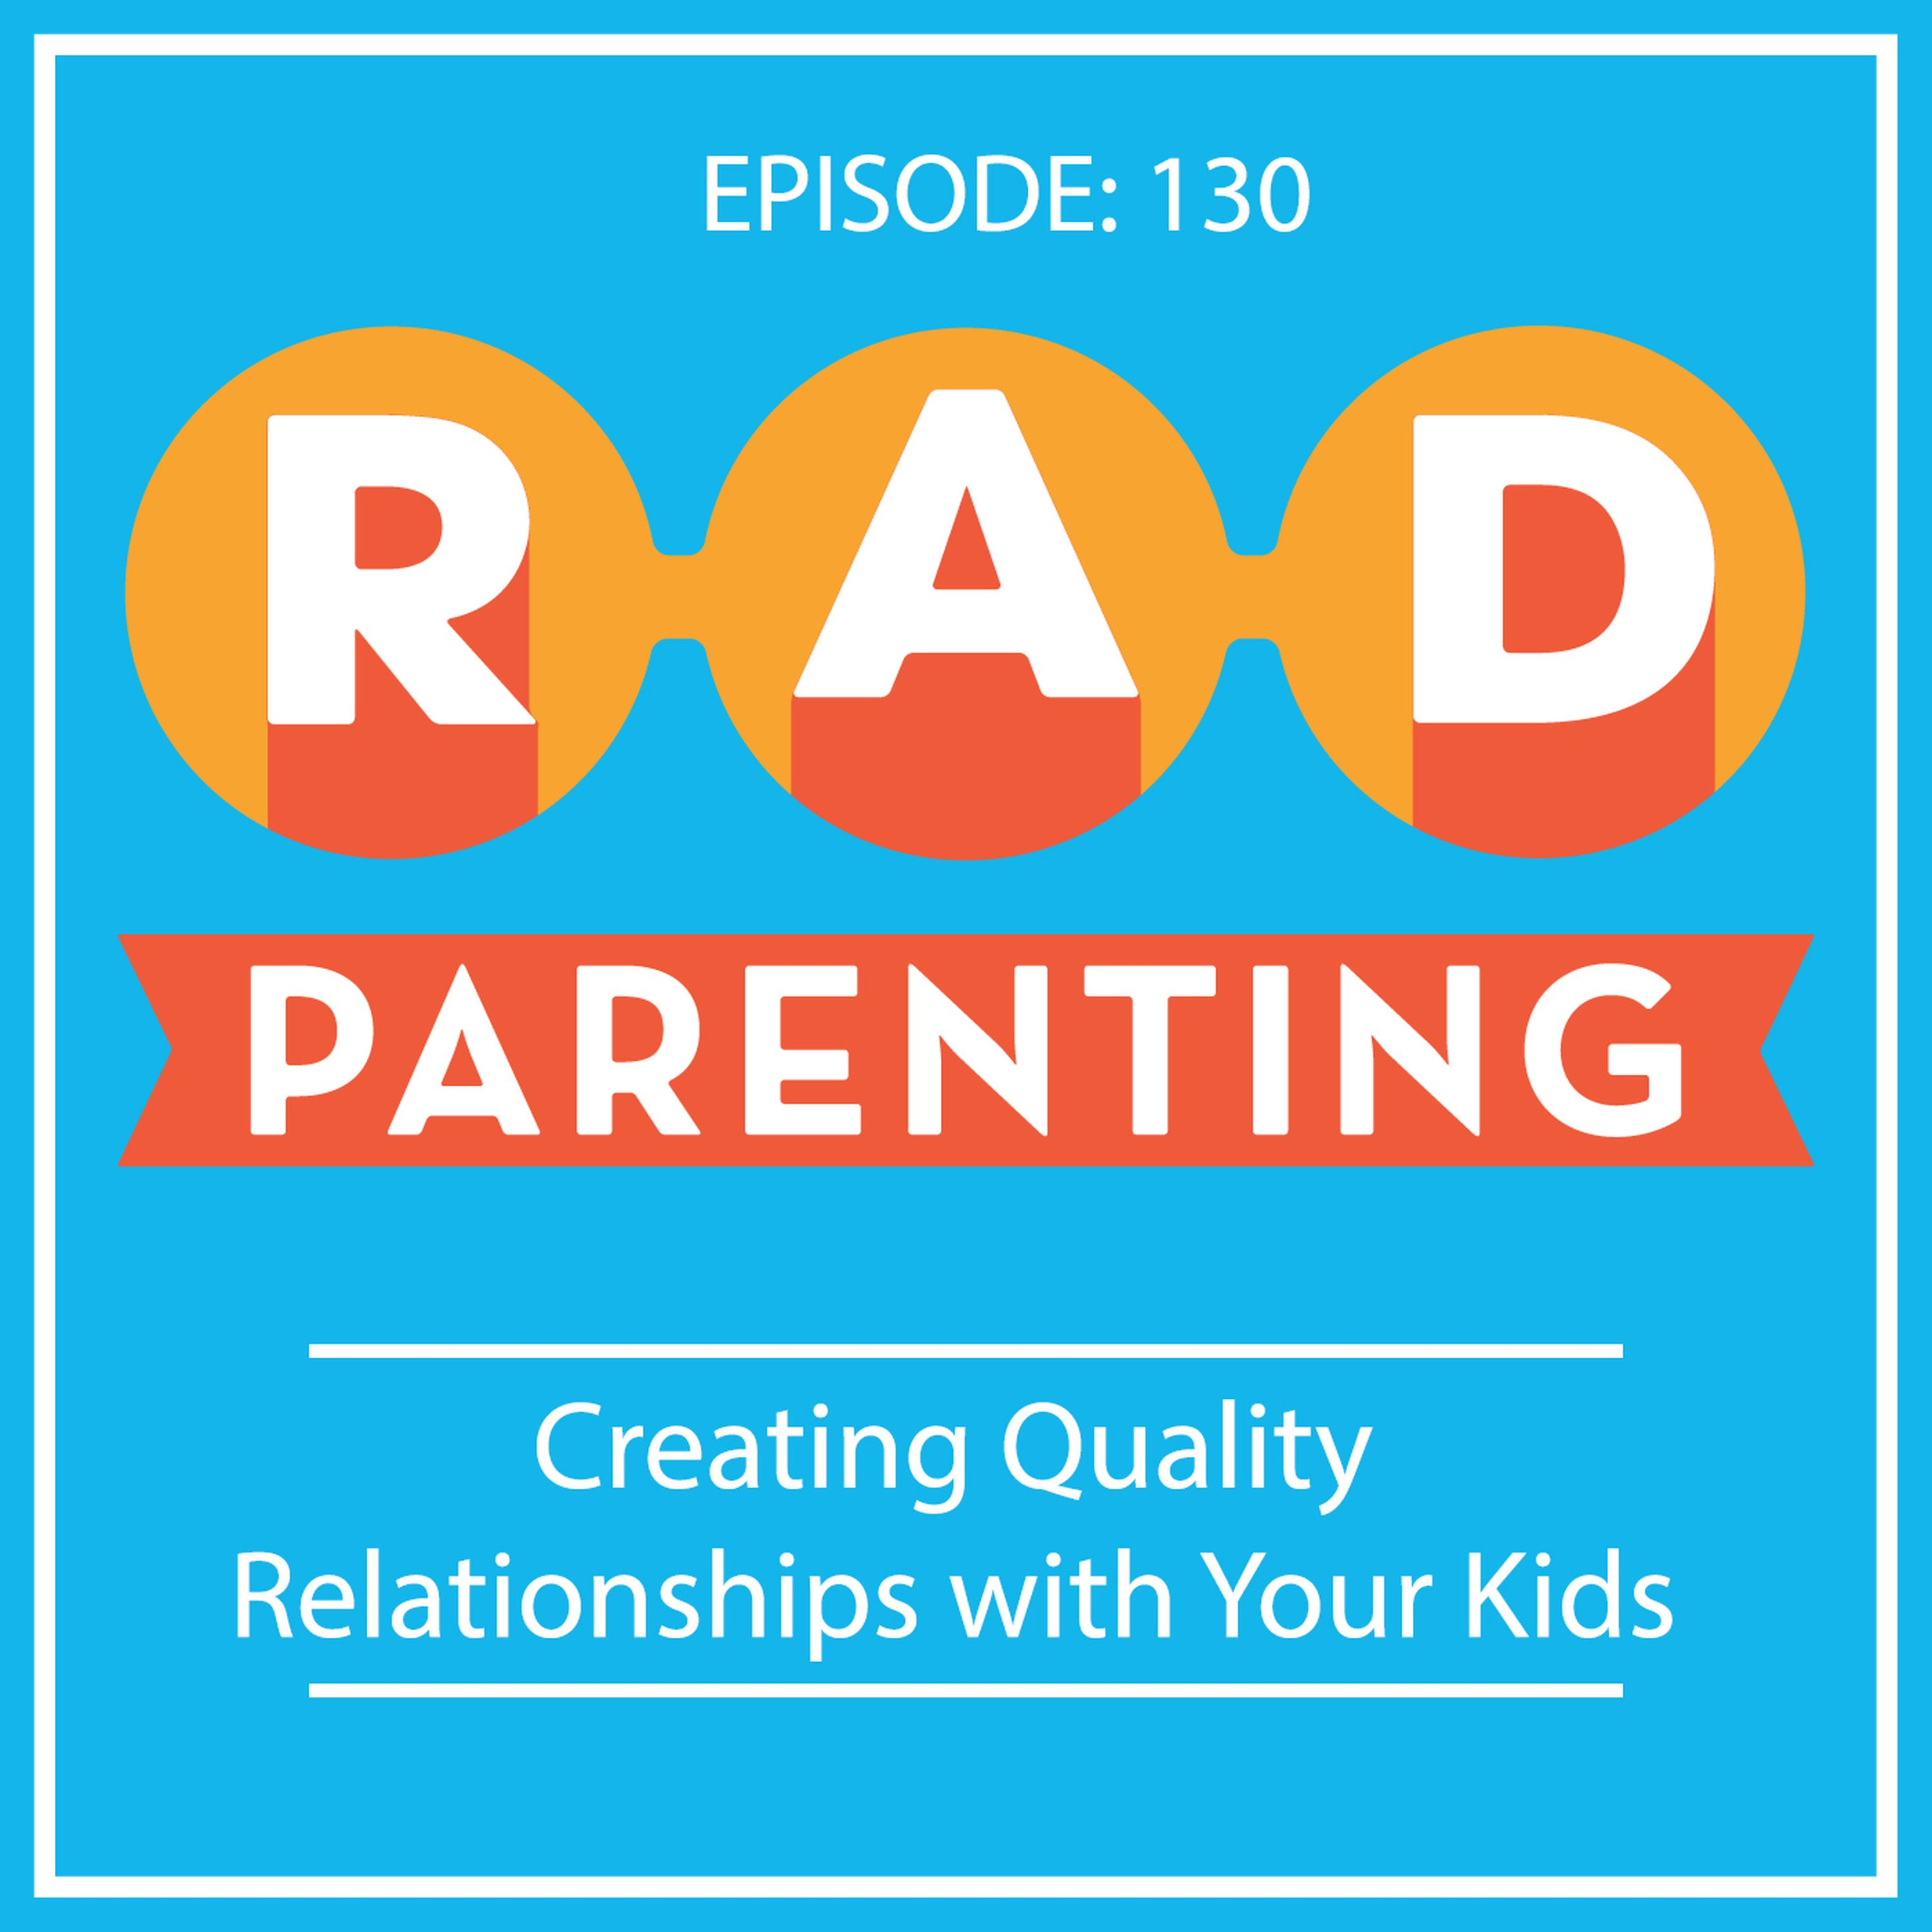 Creating Quality Relationships with Your Kids